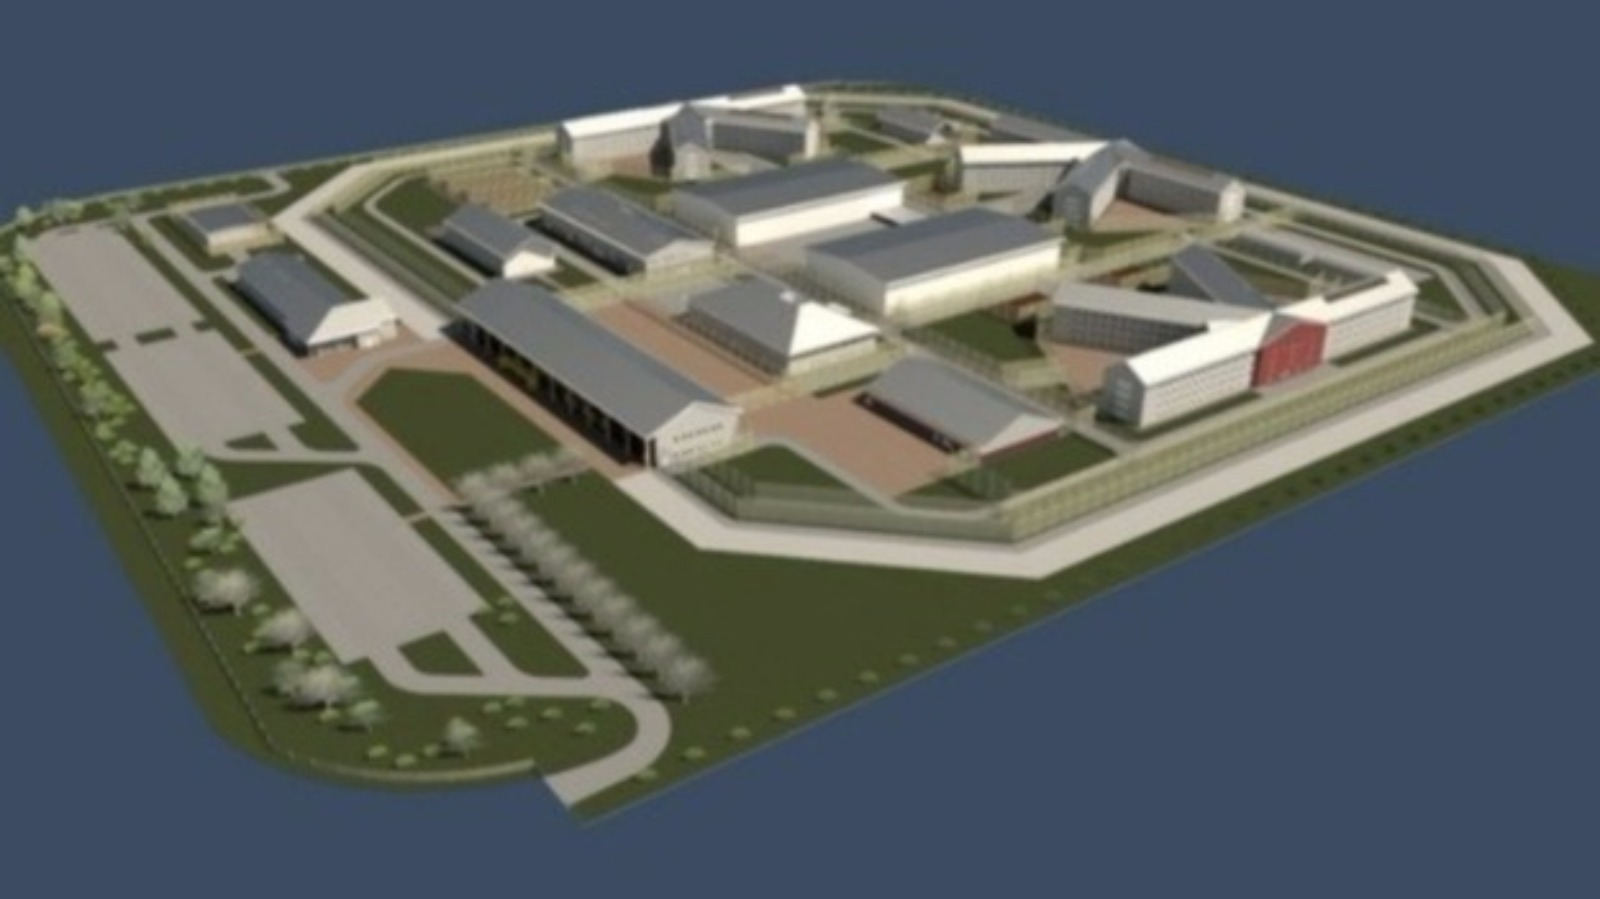 Wrexham super-prison to be named HMP Berwyn | Wales - ITV News